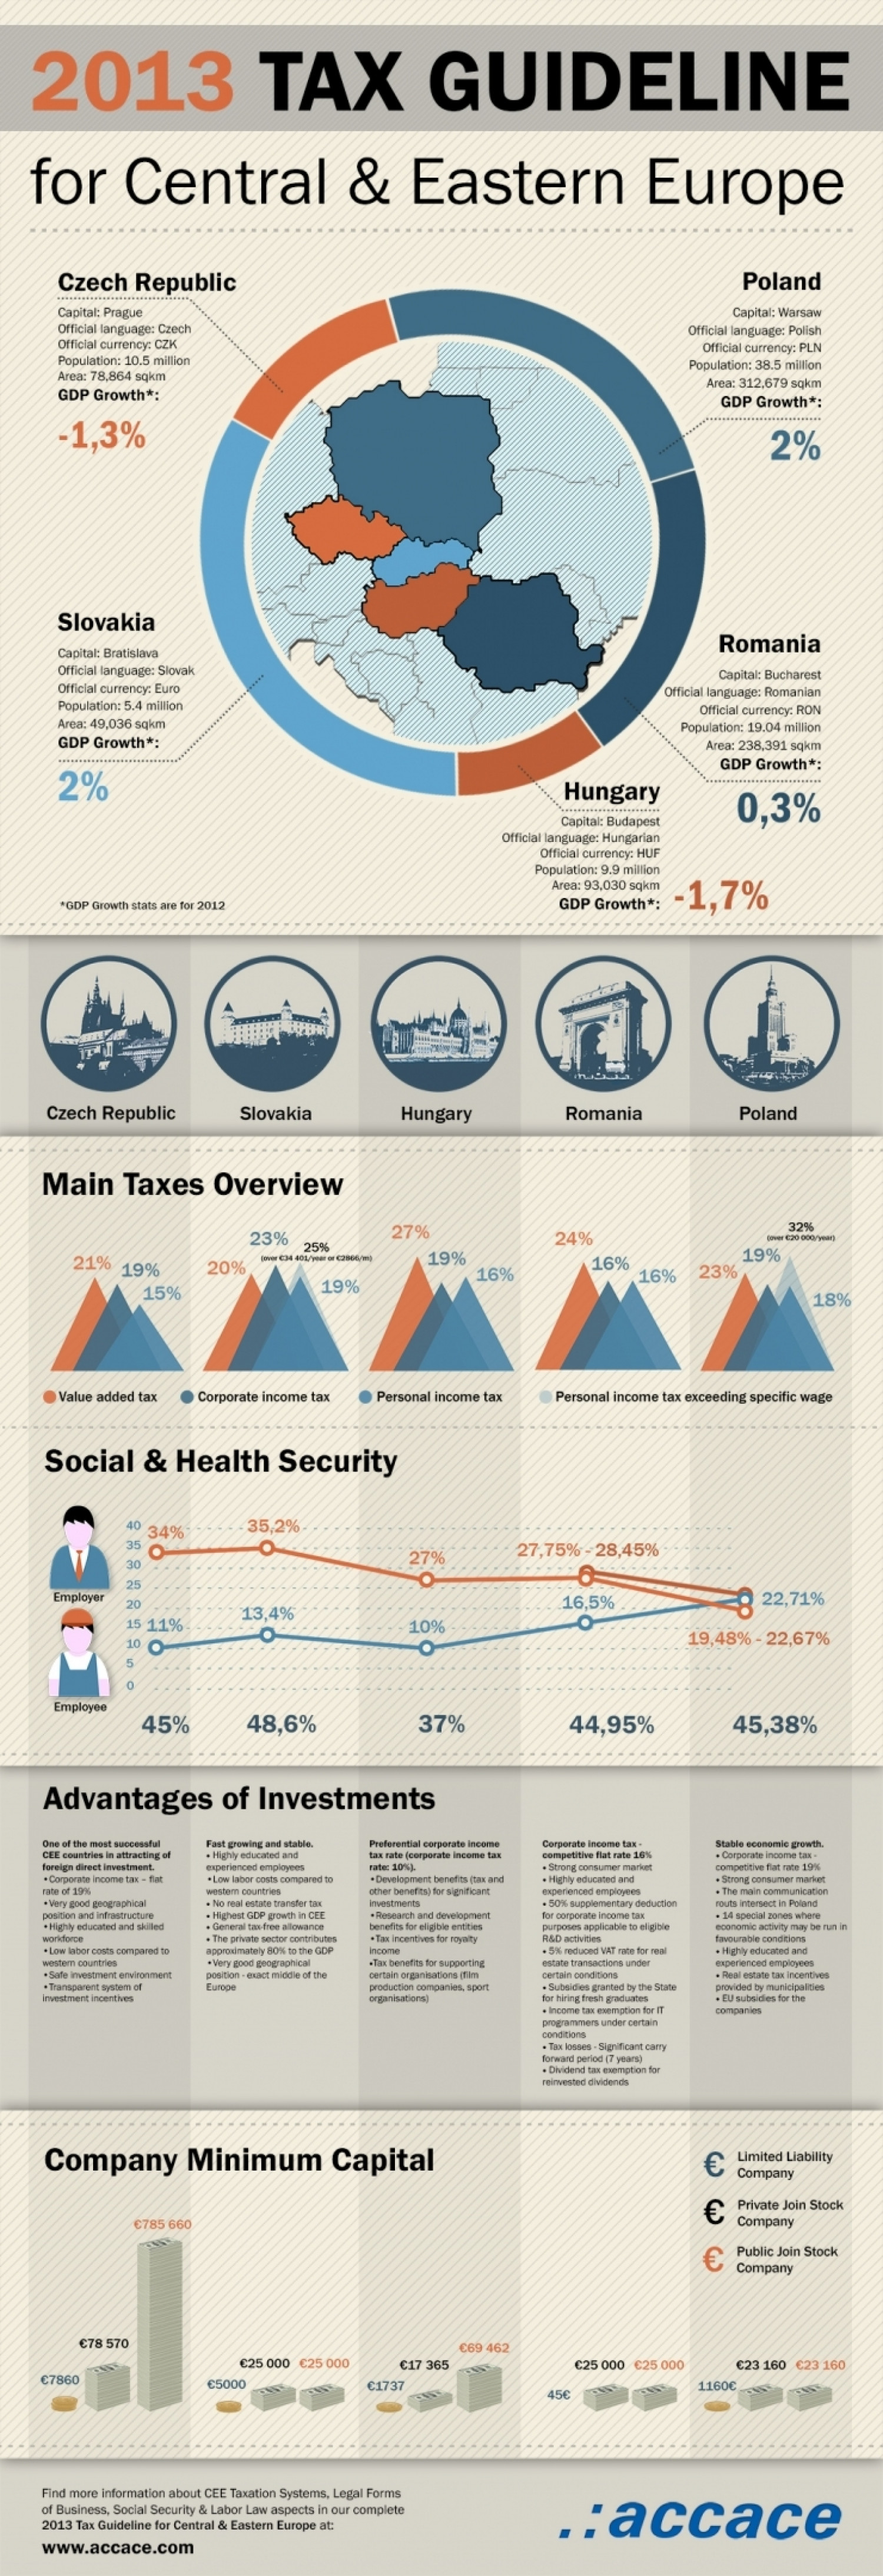 2013 Tax Guideline for Central & Eastern Europe Infographic